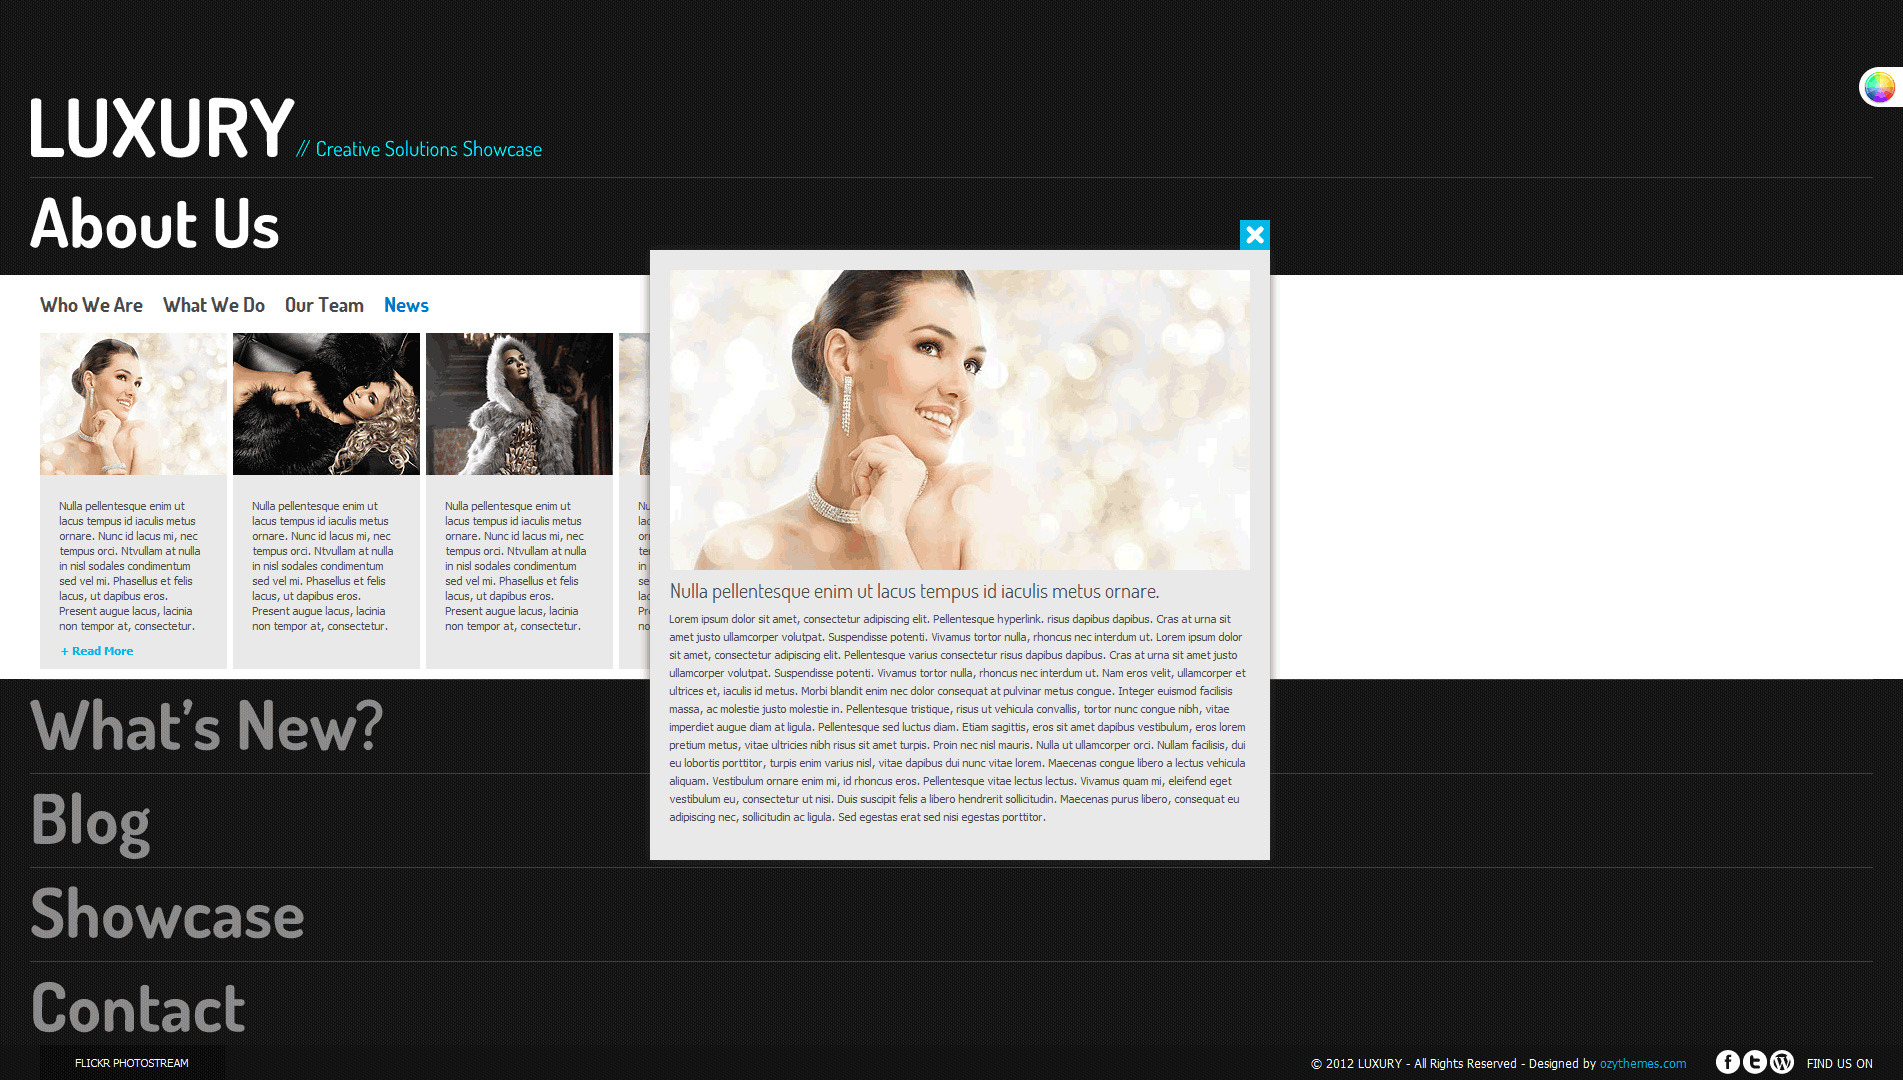 Luxury Stylish Accordion Wordpress Theme - News page one of the boxes selected and detail window opened